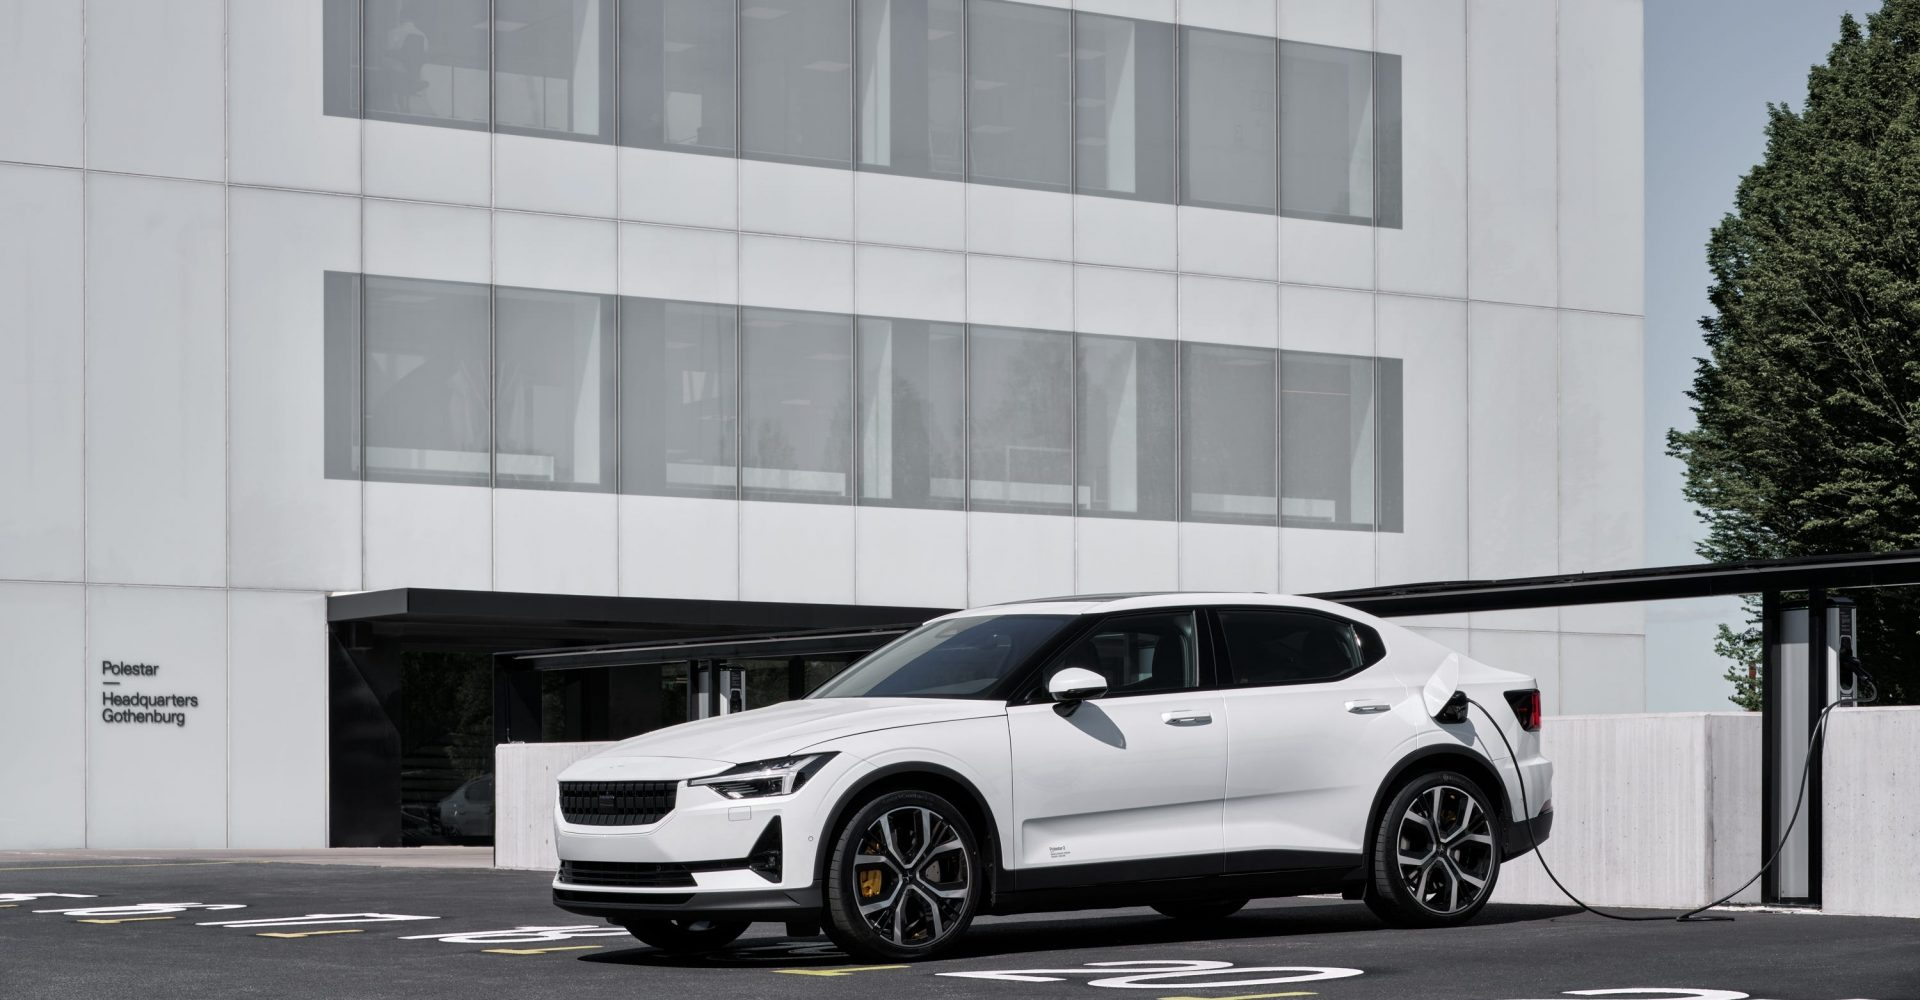 Polestar aims to create the first climate neutral car by 2030